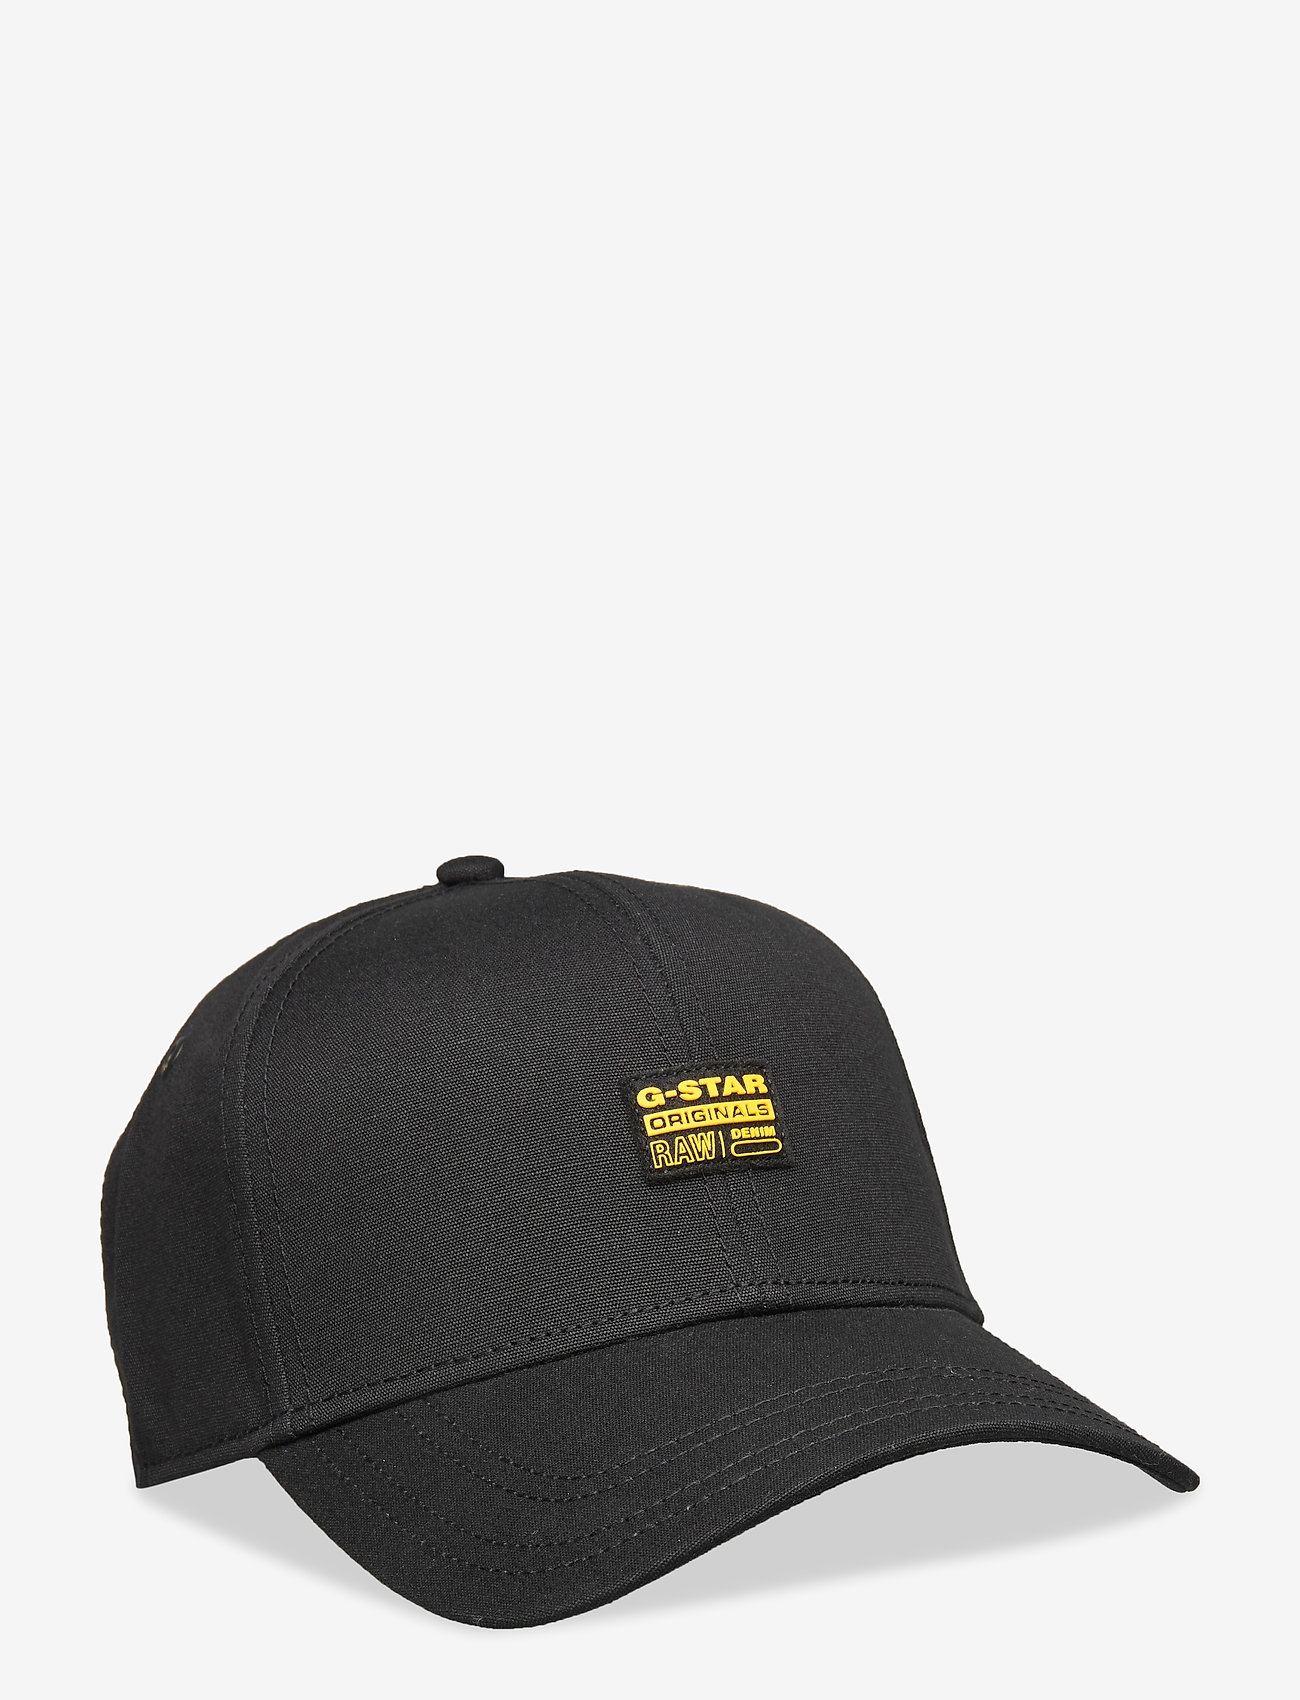 G-star RAW - Originals baseball cap - petten - dk black - 0